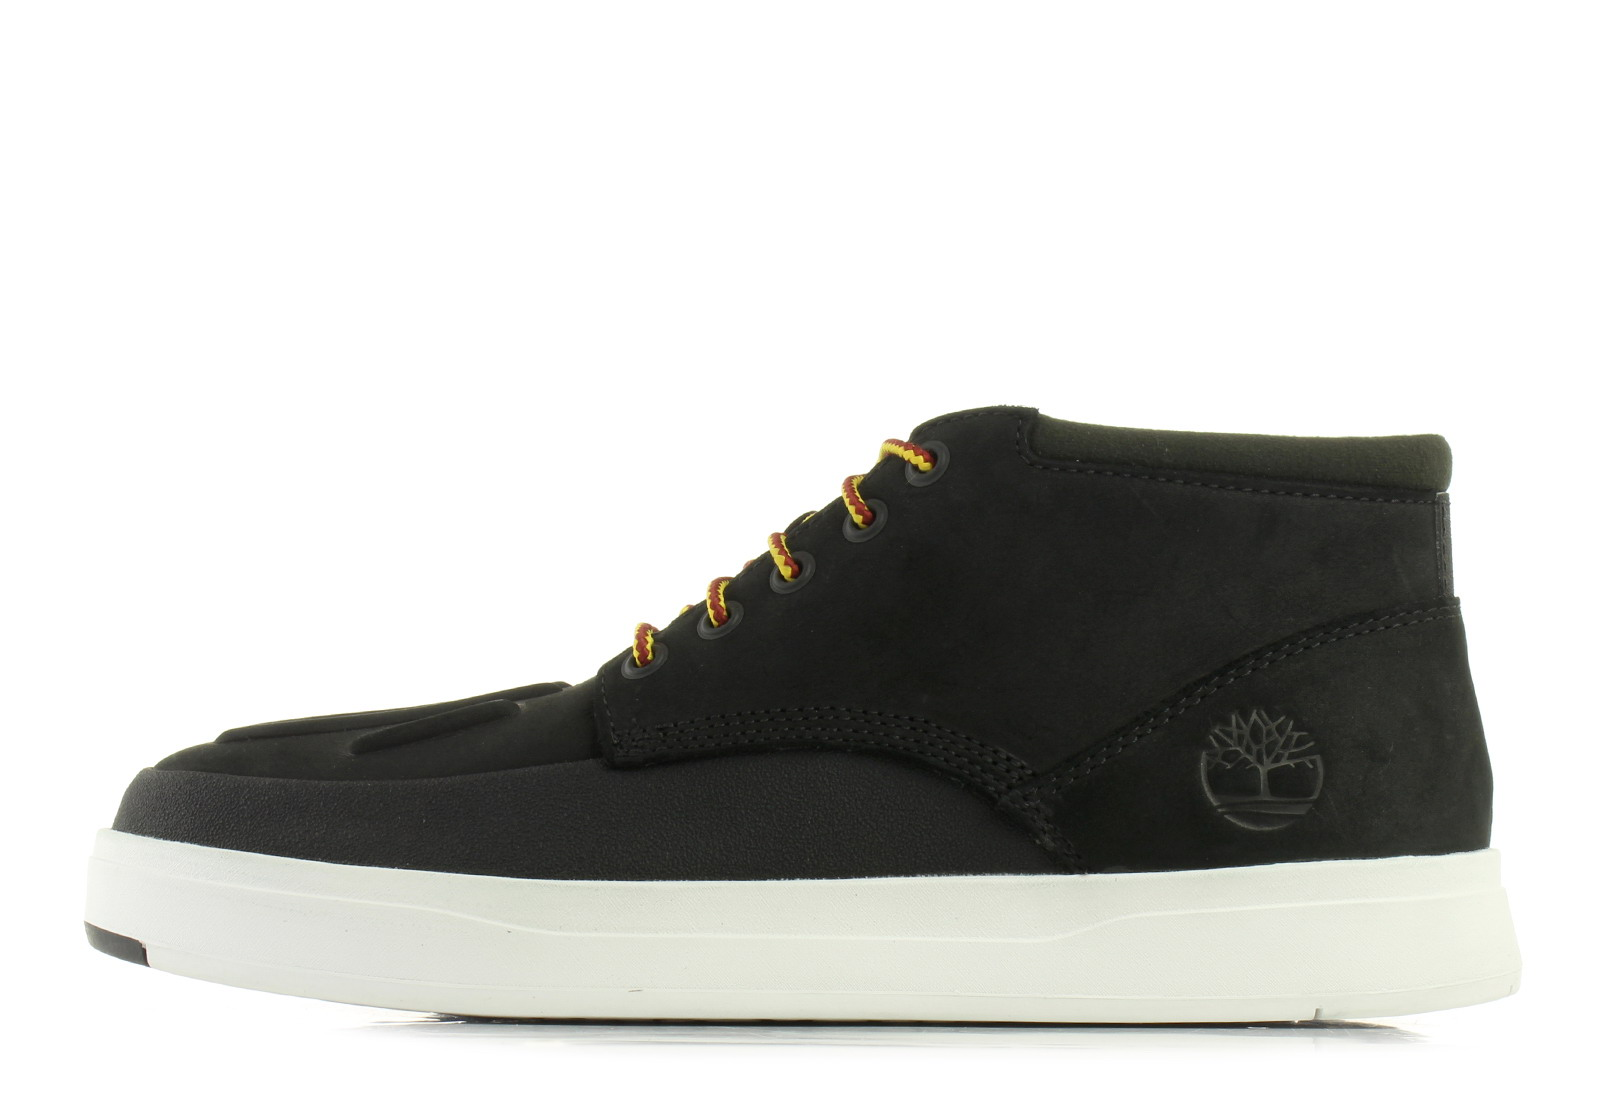 Timberland David A1u6w SneakersAnd Boots For Online Square Blk Shop Shoes Sneakers qSMpGUzV